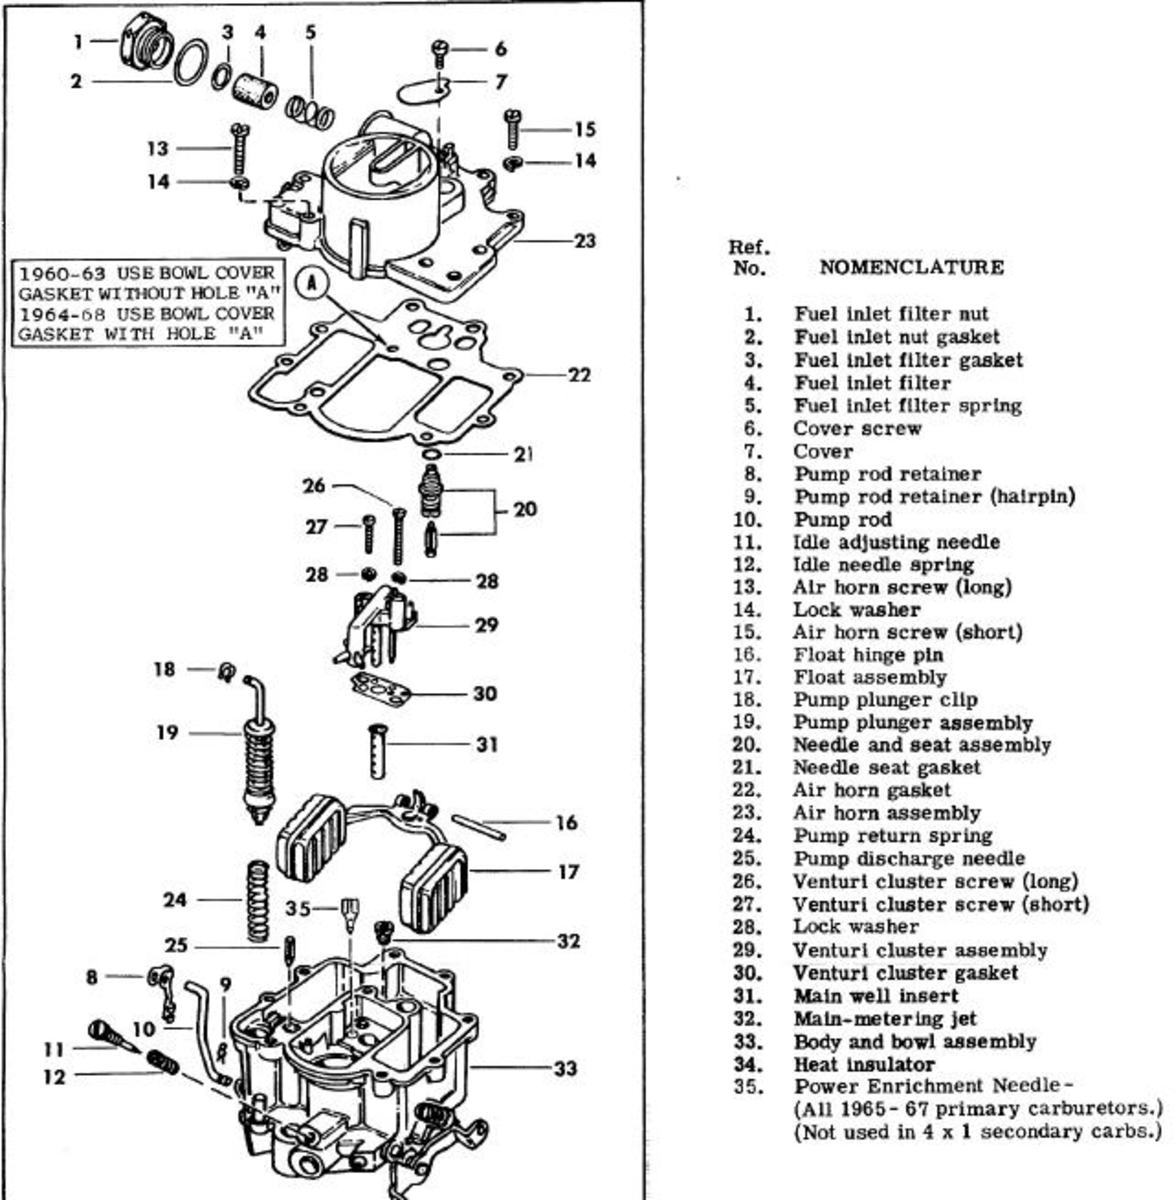 1964 Corvair Carburetor Diagram : 31 Wiring Diagram Images